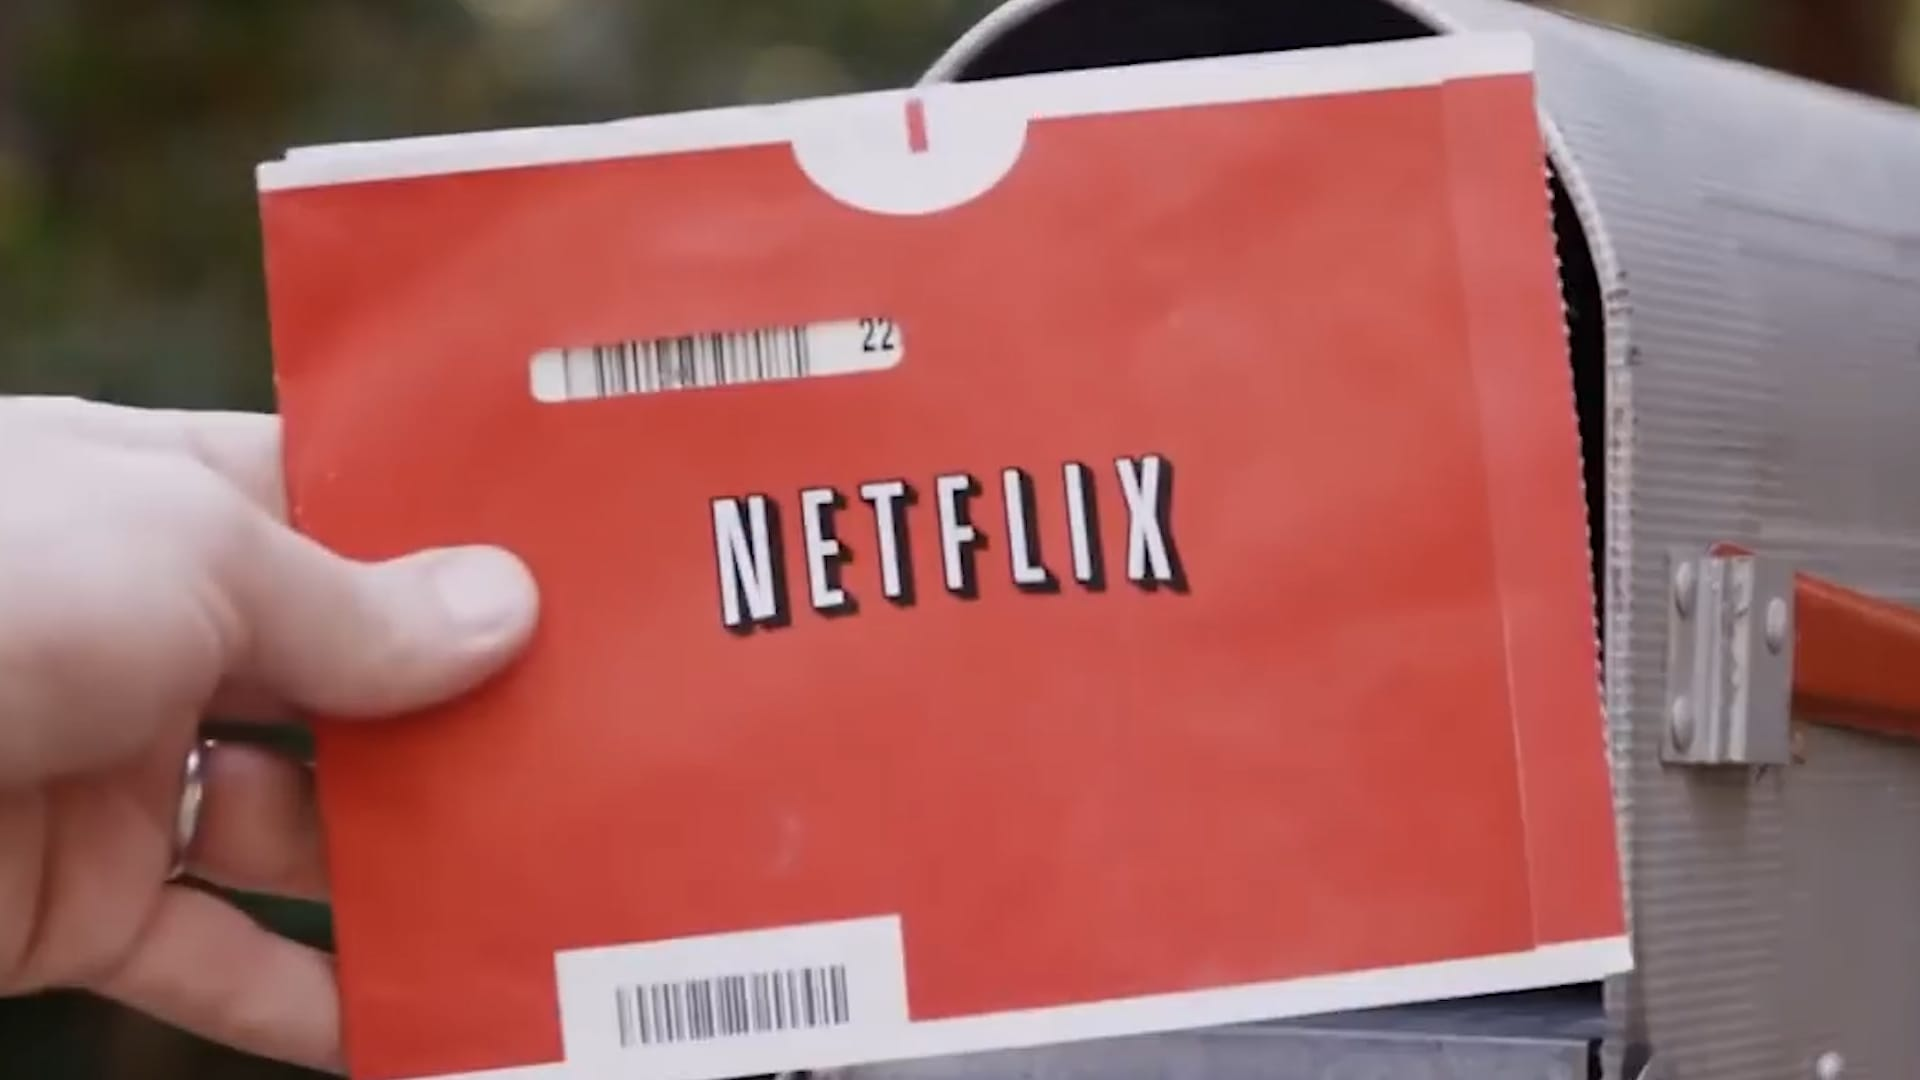 Netflix loses $16 billion in market value following surprise earnings miss